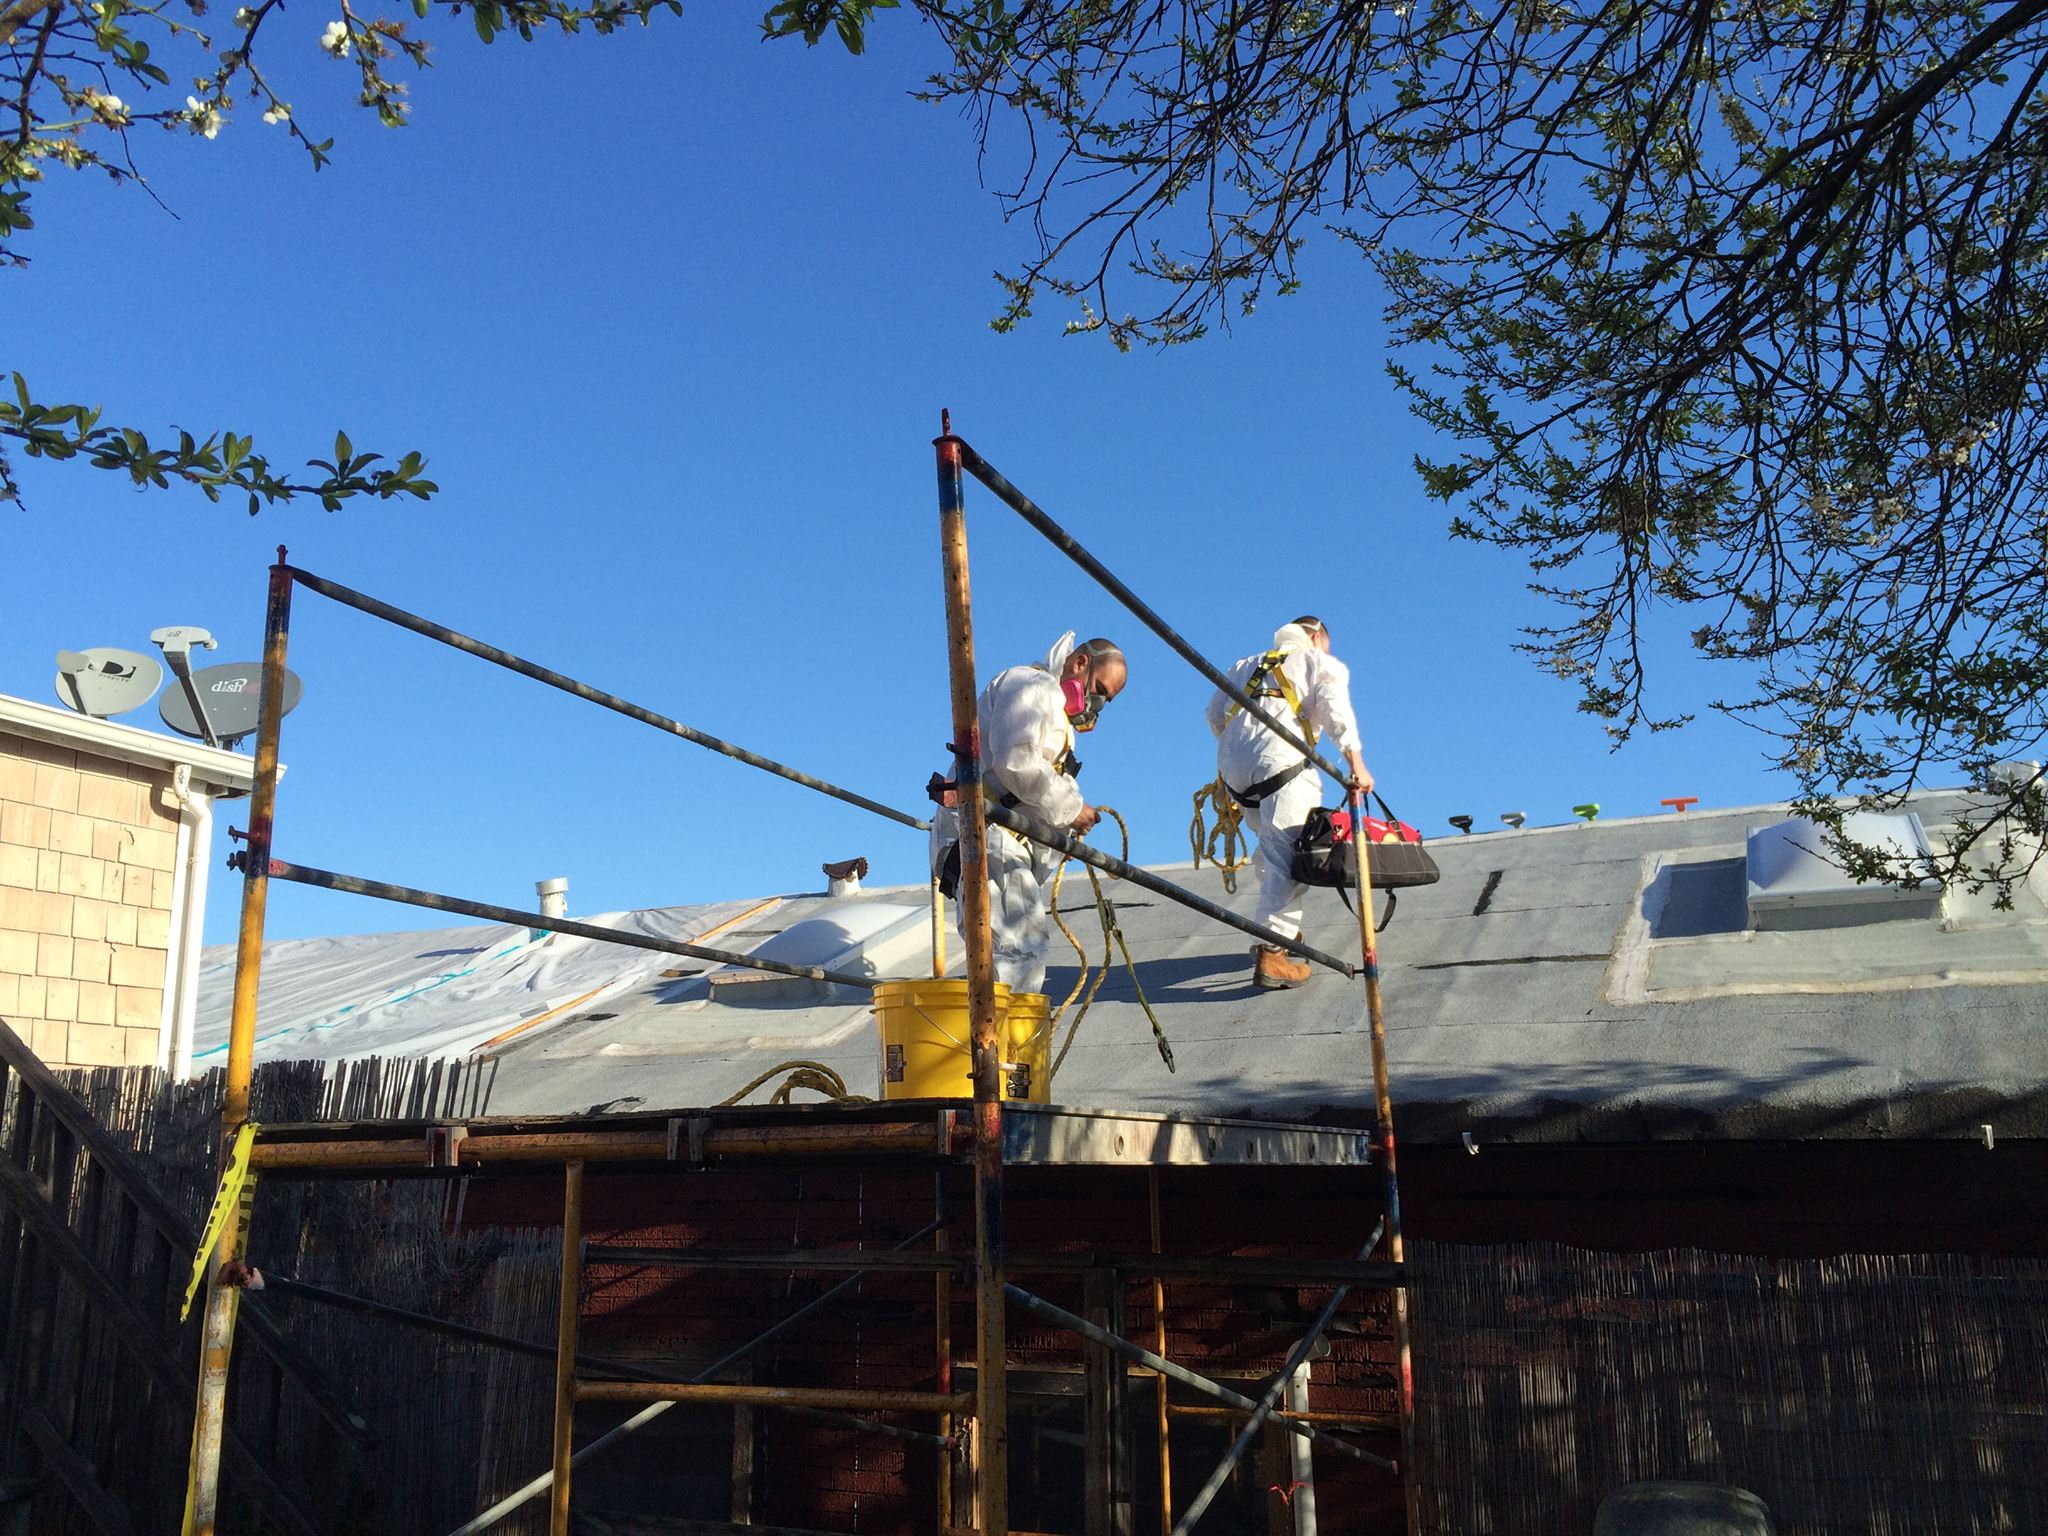 MESS Clean Up worksite on roof top job. Serving California's Central Coast with Asbestos, Mold, Lead, and Selective Demolition